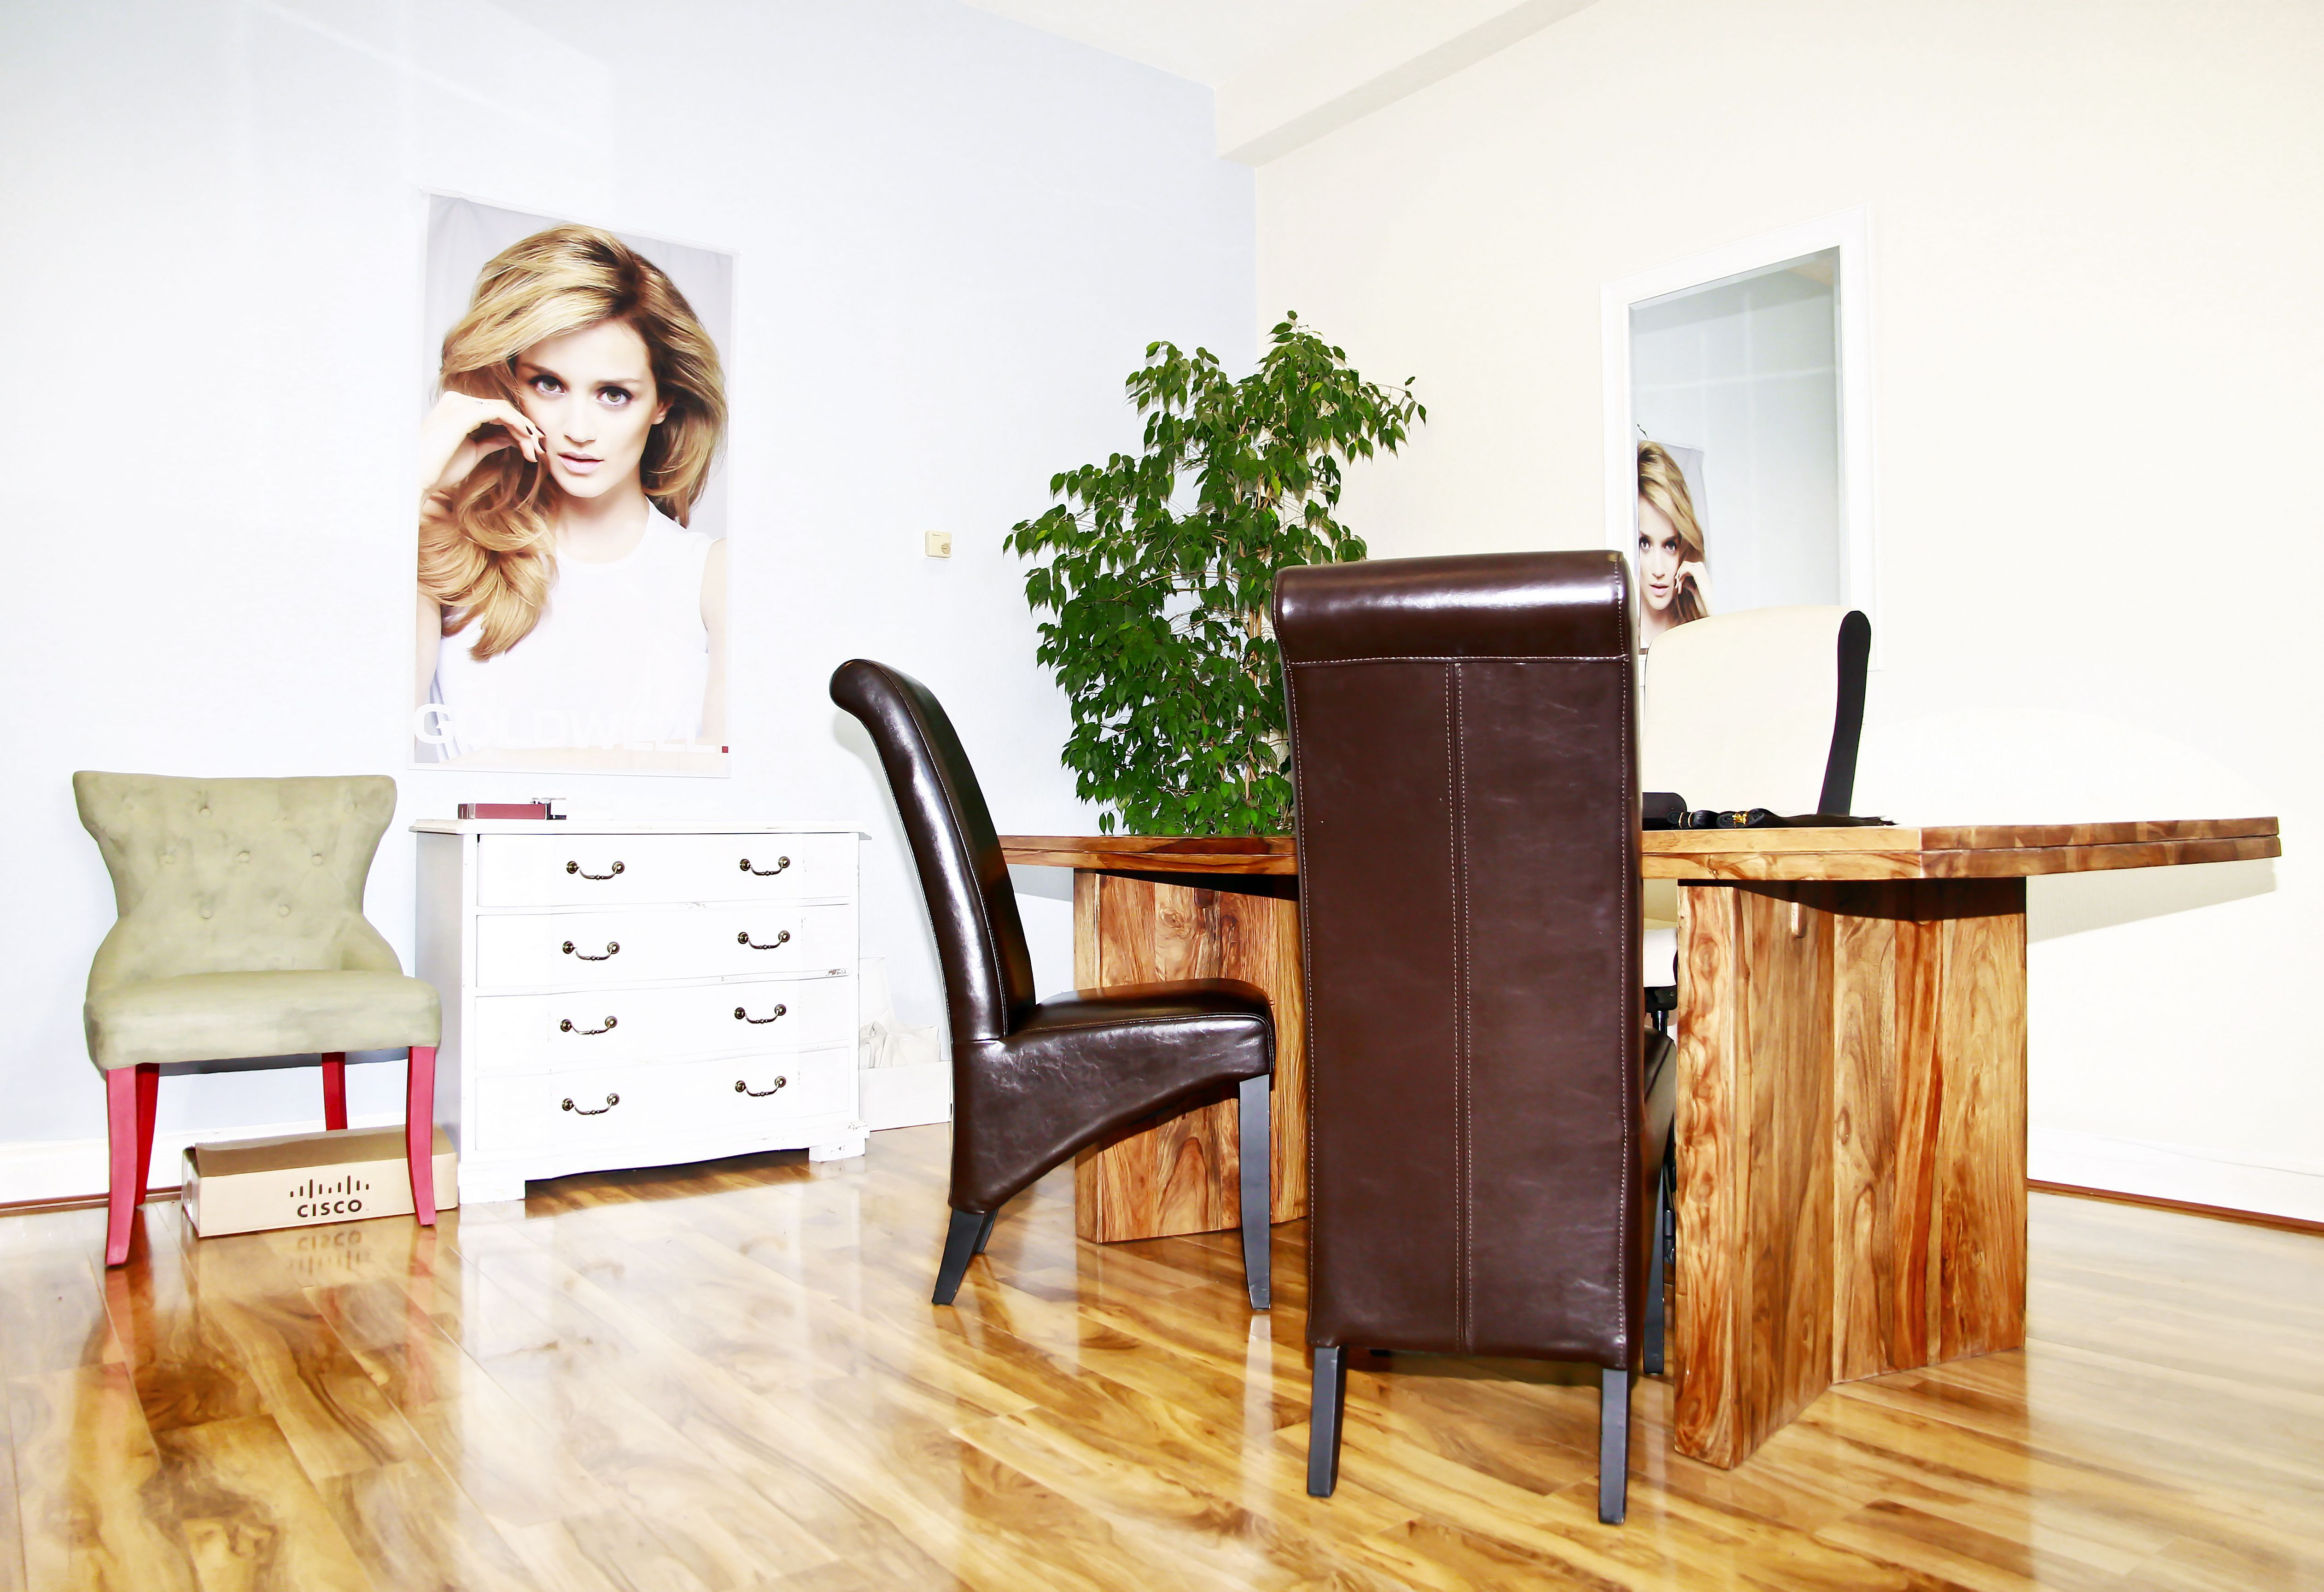 Our London Salon Located In Barnet Offers Non Invasive Solutions To Women Affected By Alopecia Trichotillomania Or Hair Loss Hair Loss Remedies Help Hair Loss